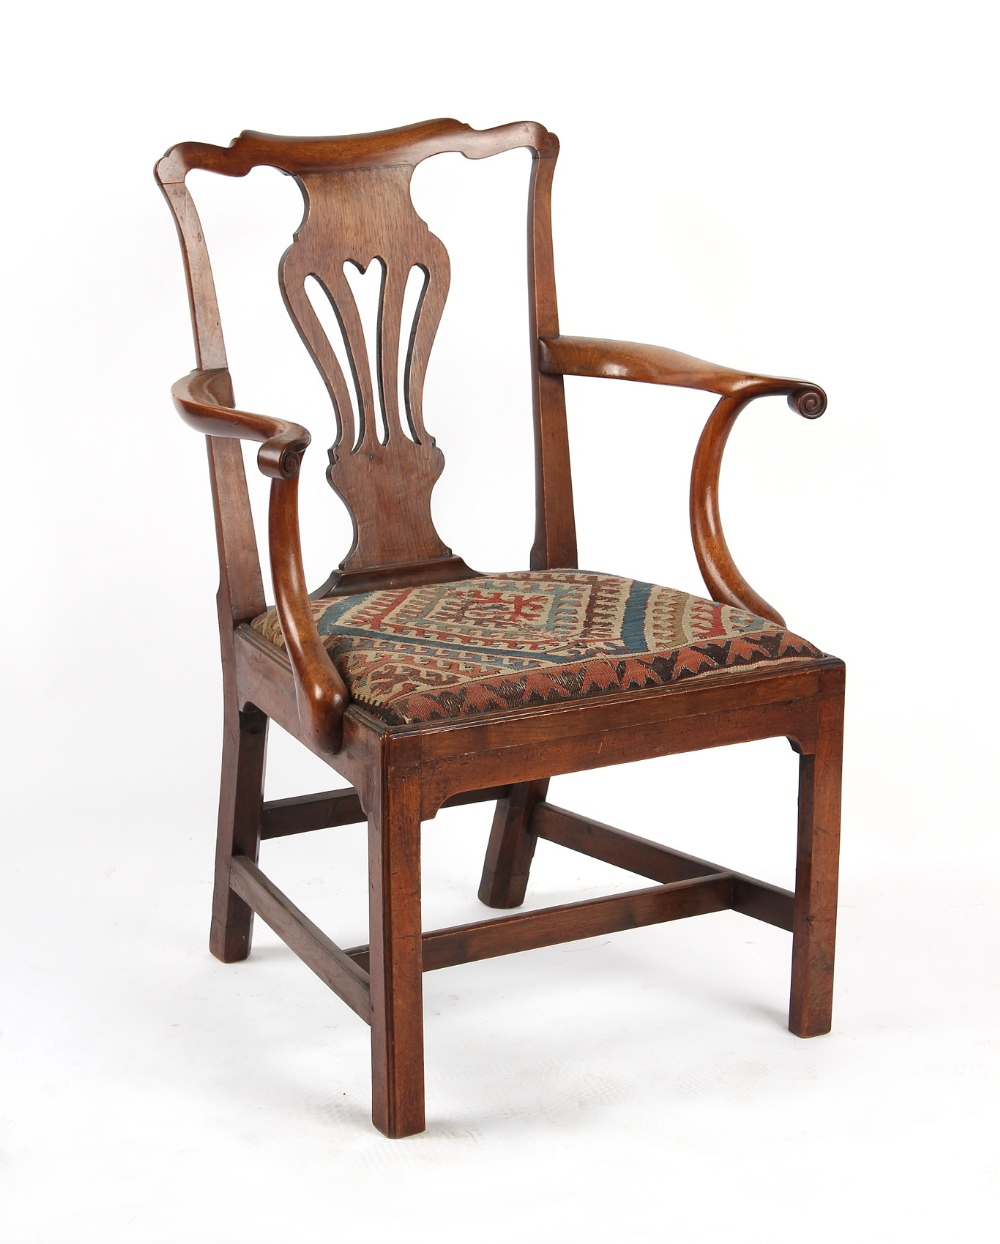 Property of a gentleman - an 18th century George III fruitwood elbow chair, with needlework drop-